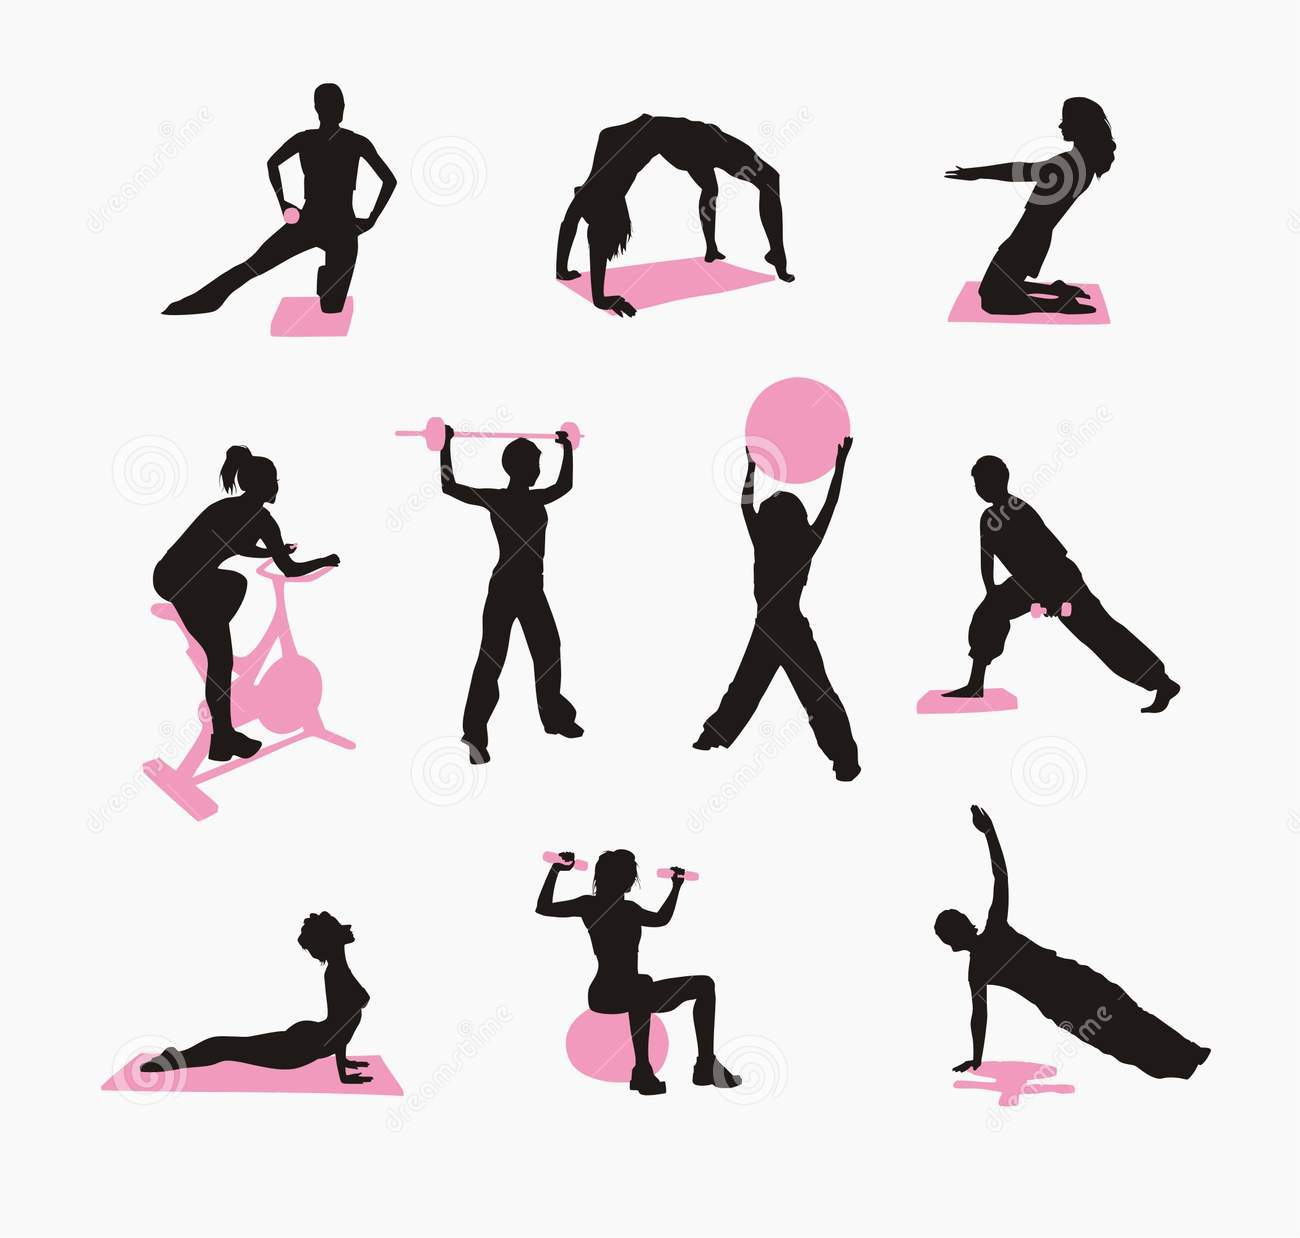 Black woman exercising clipart images clipart library download Black Women Working Clipart - Free Clipart clipart library download